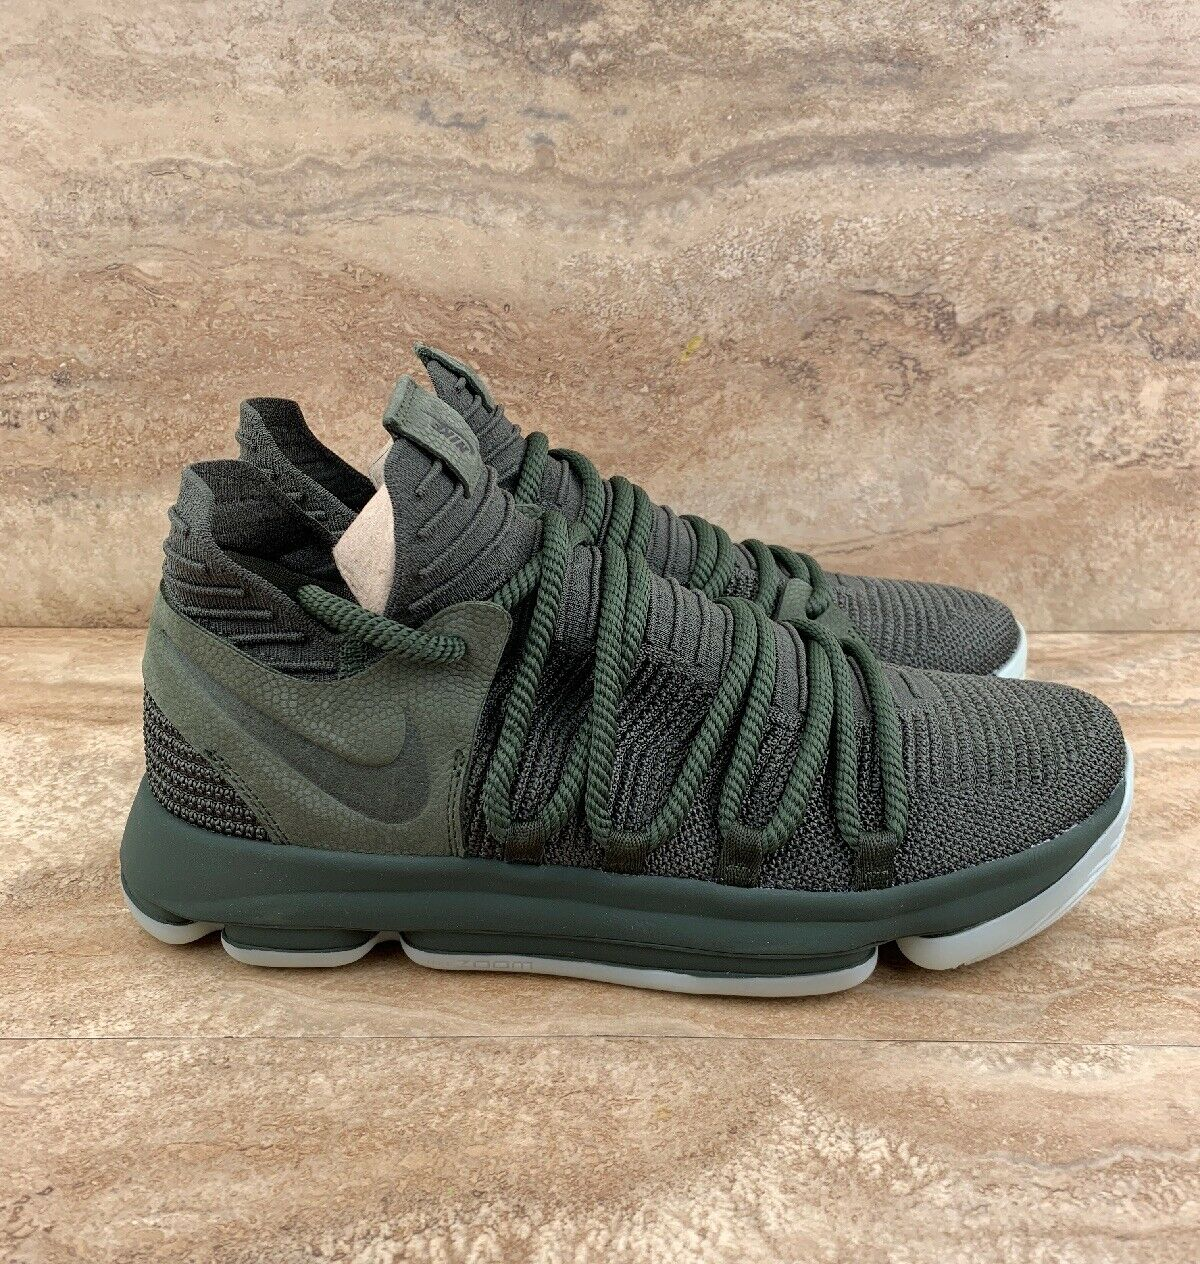 Nike Zoom KD 10 Nike Lab KDX Men's Basketball shoes Olive Green